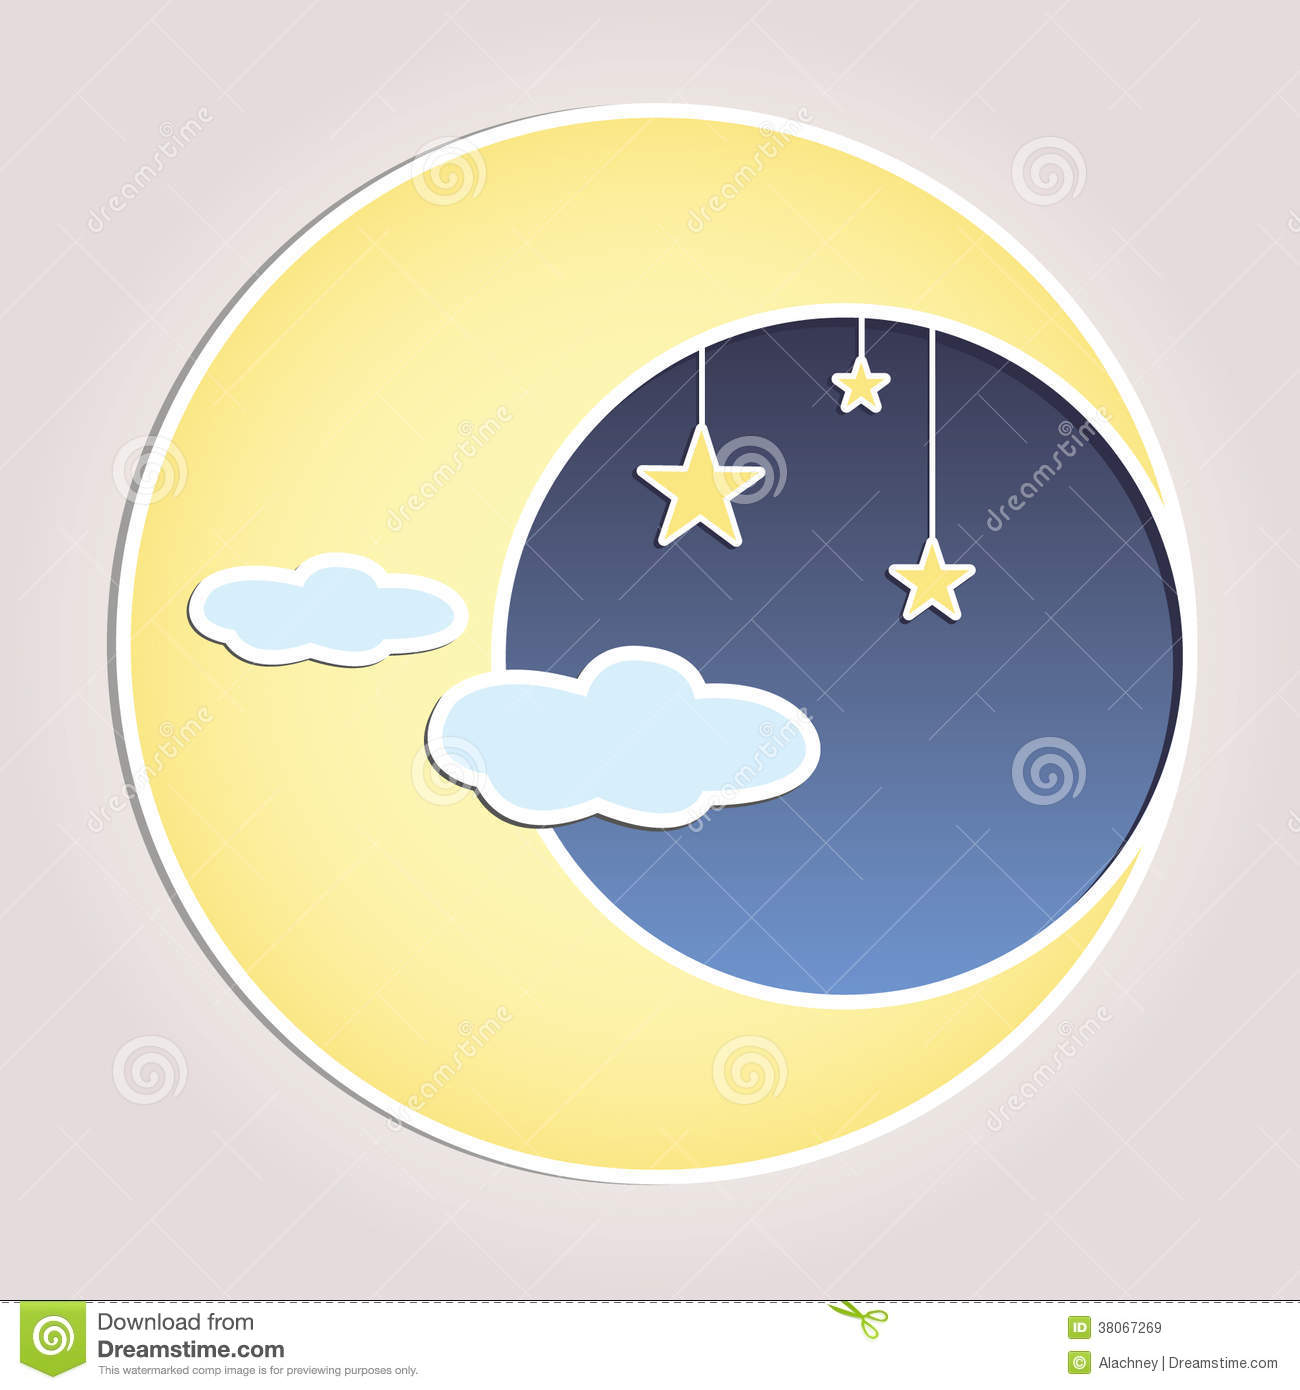 Celestial Moon Vector Illustration Royalty Free Stock